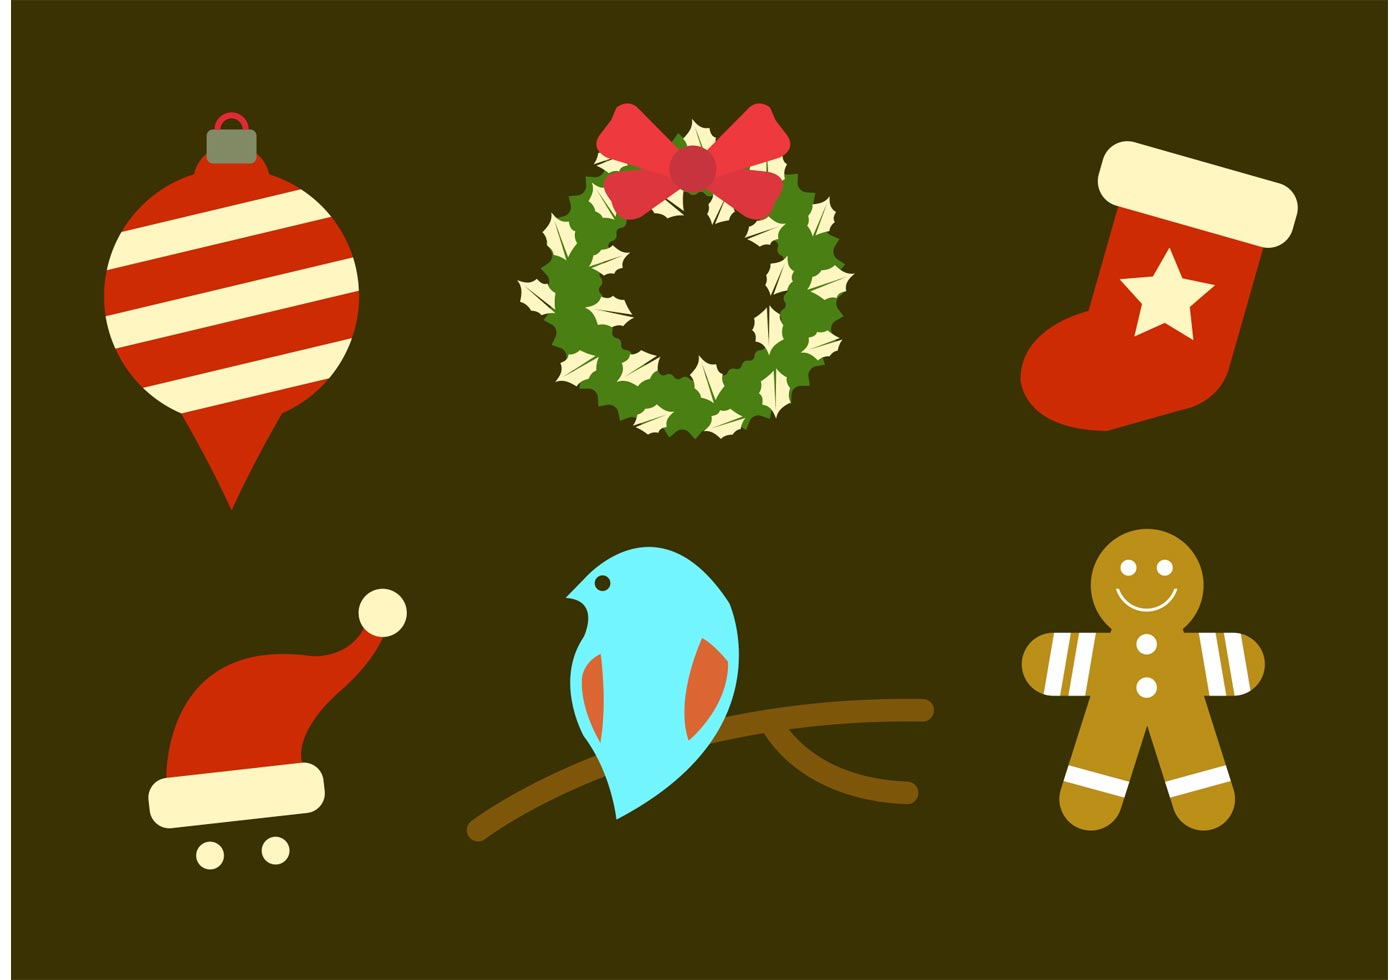 Simple christmas vector icons download free vector art for Minimalist christmas